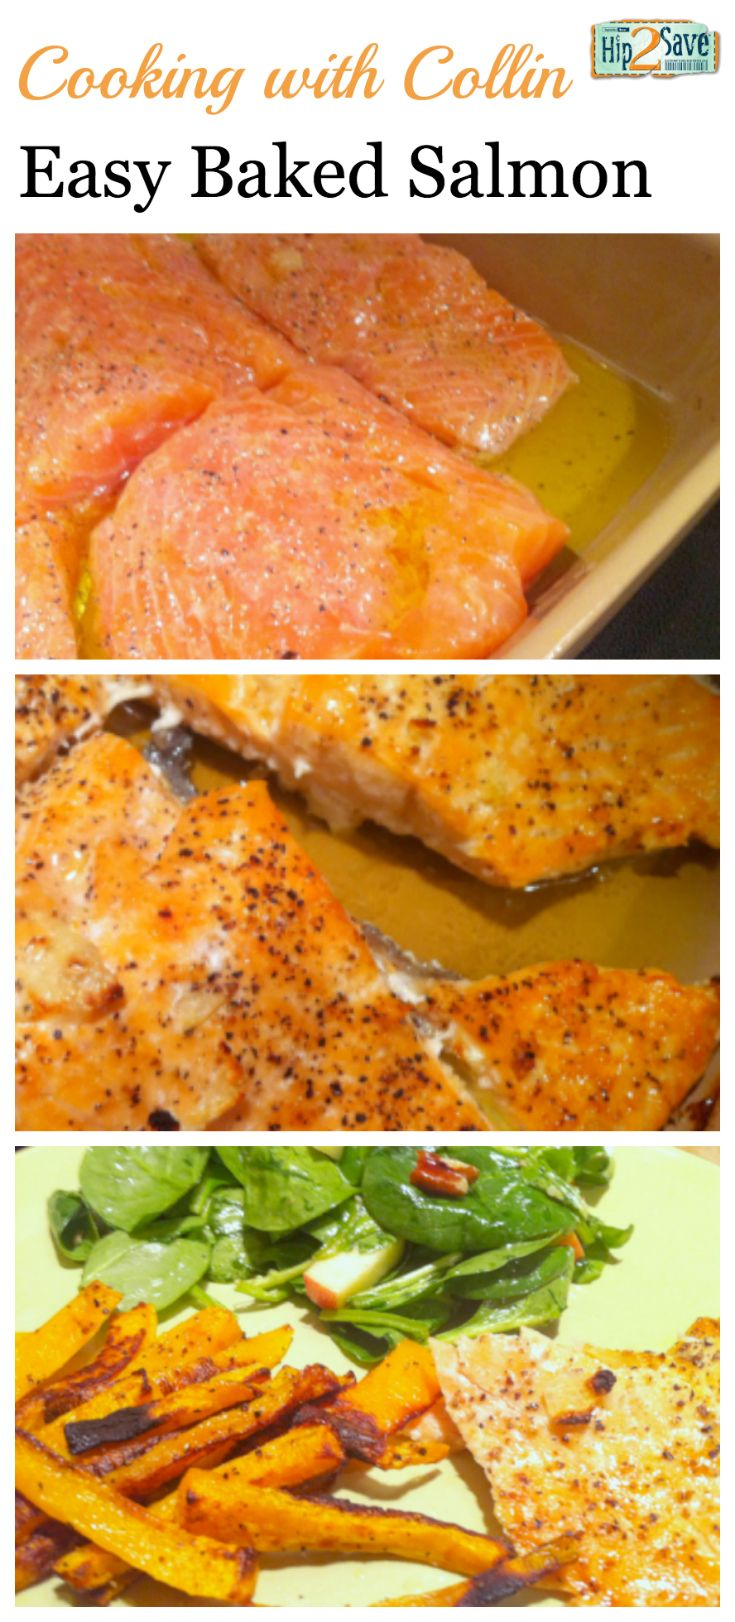 Even if you don't love salmon, give this easy baked salmon recipe a try – it's so yummy!! (Especially if you love salmon like me.)